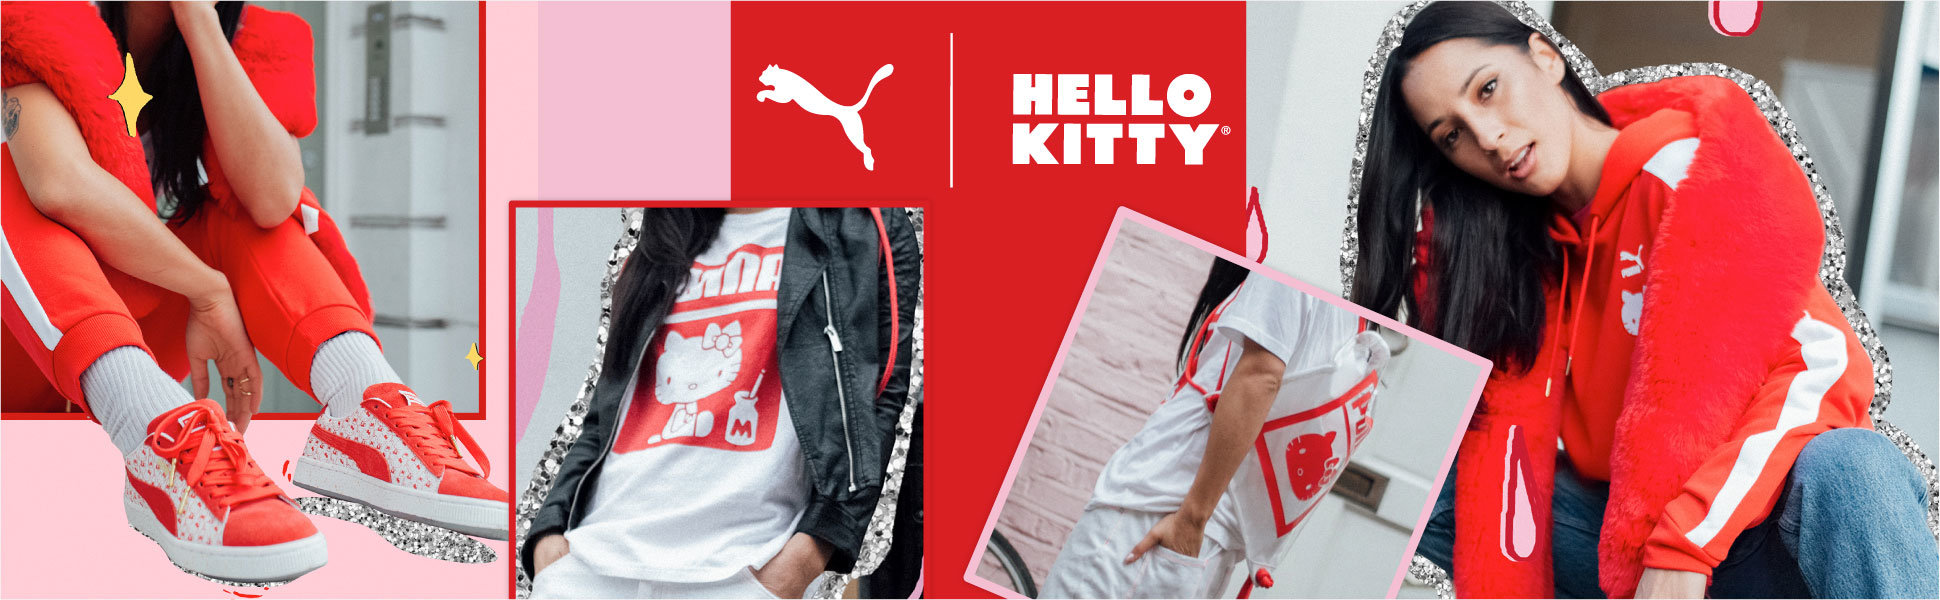 promo code c8847 a2c1f Hello Kitty teams up with Puma for new fashion line - Nerd ...